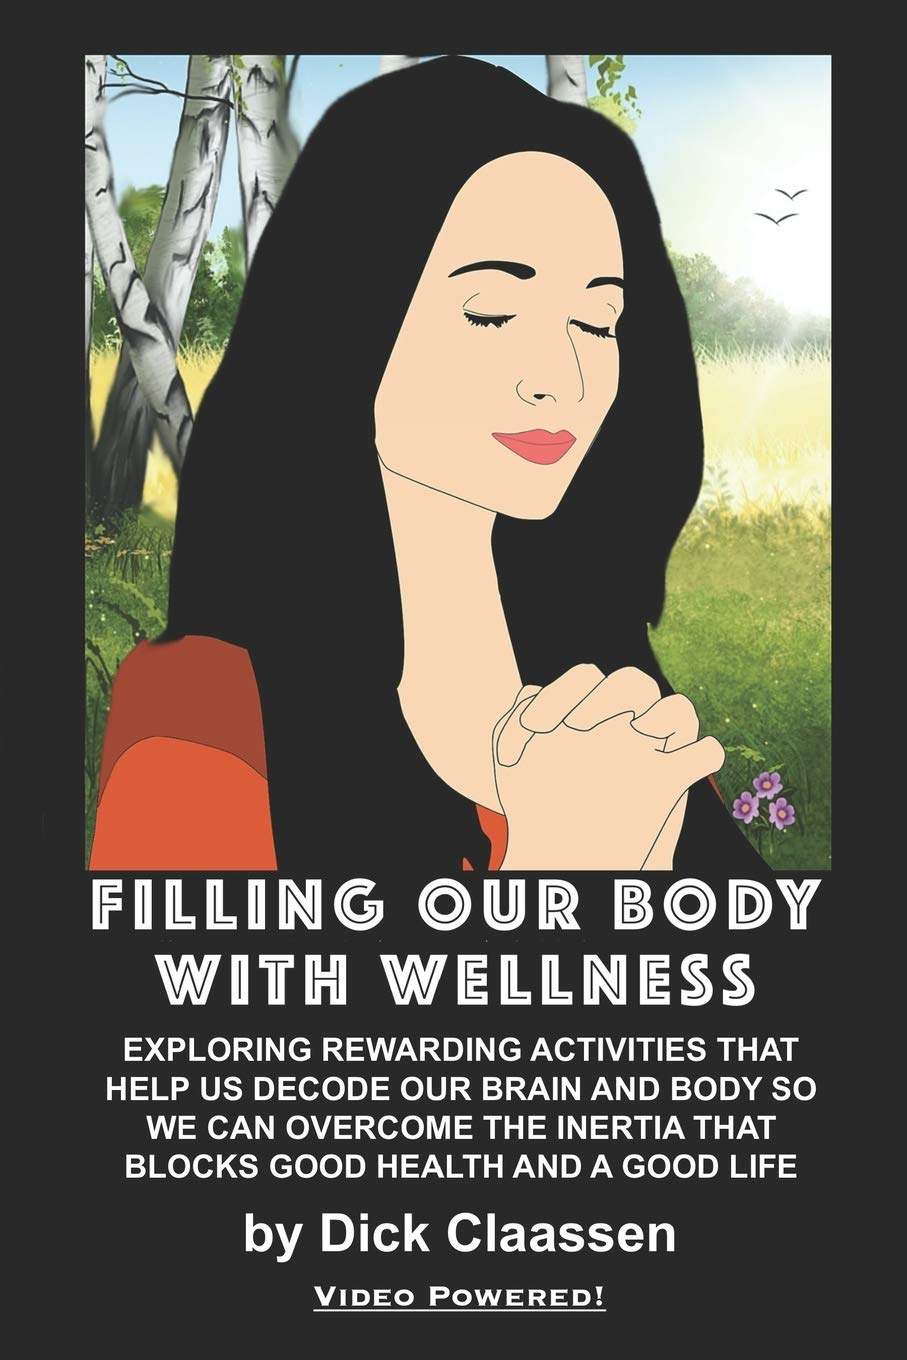 FILLING OUR BODY WITH WELLNESS: Exploring Rewarding Activities That Help Us Decode Our Brain and Body So We Can Overcome the Inertia That Blocks Good Health and a Good Life